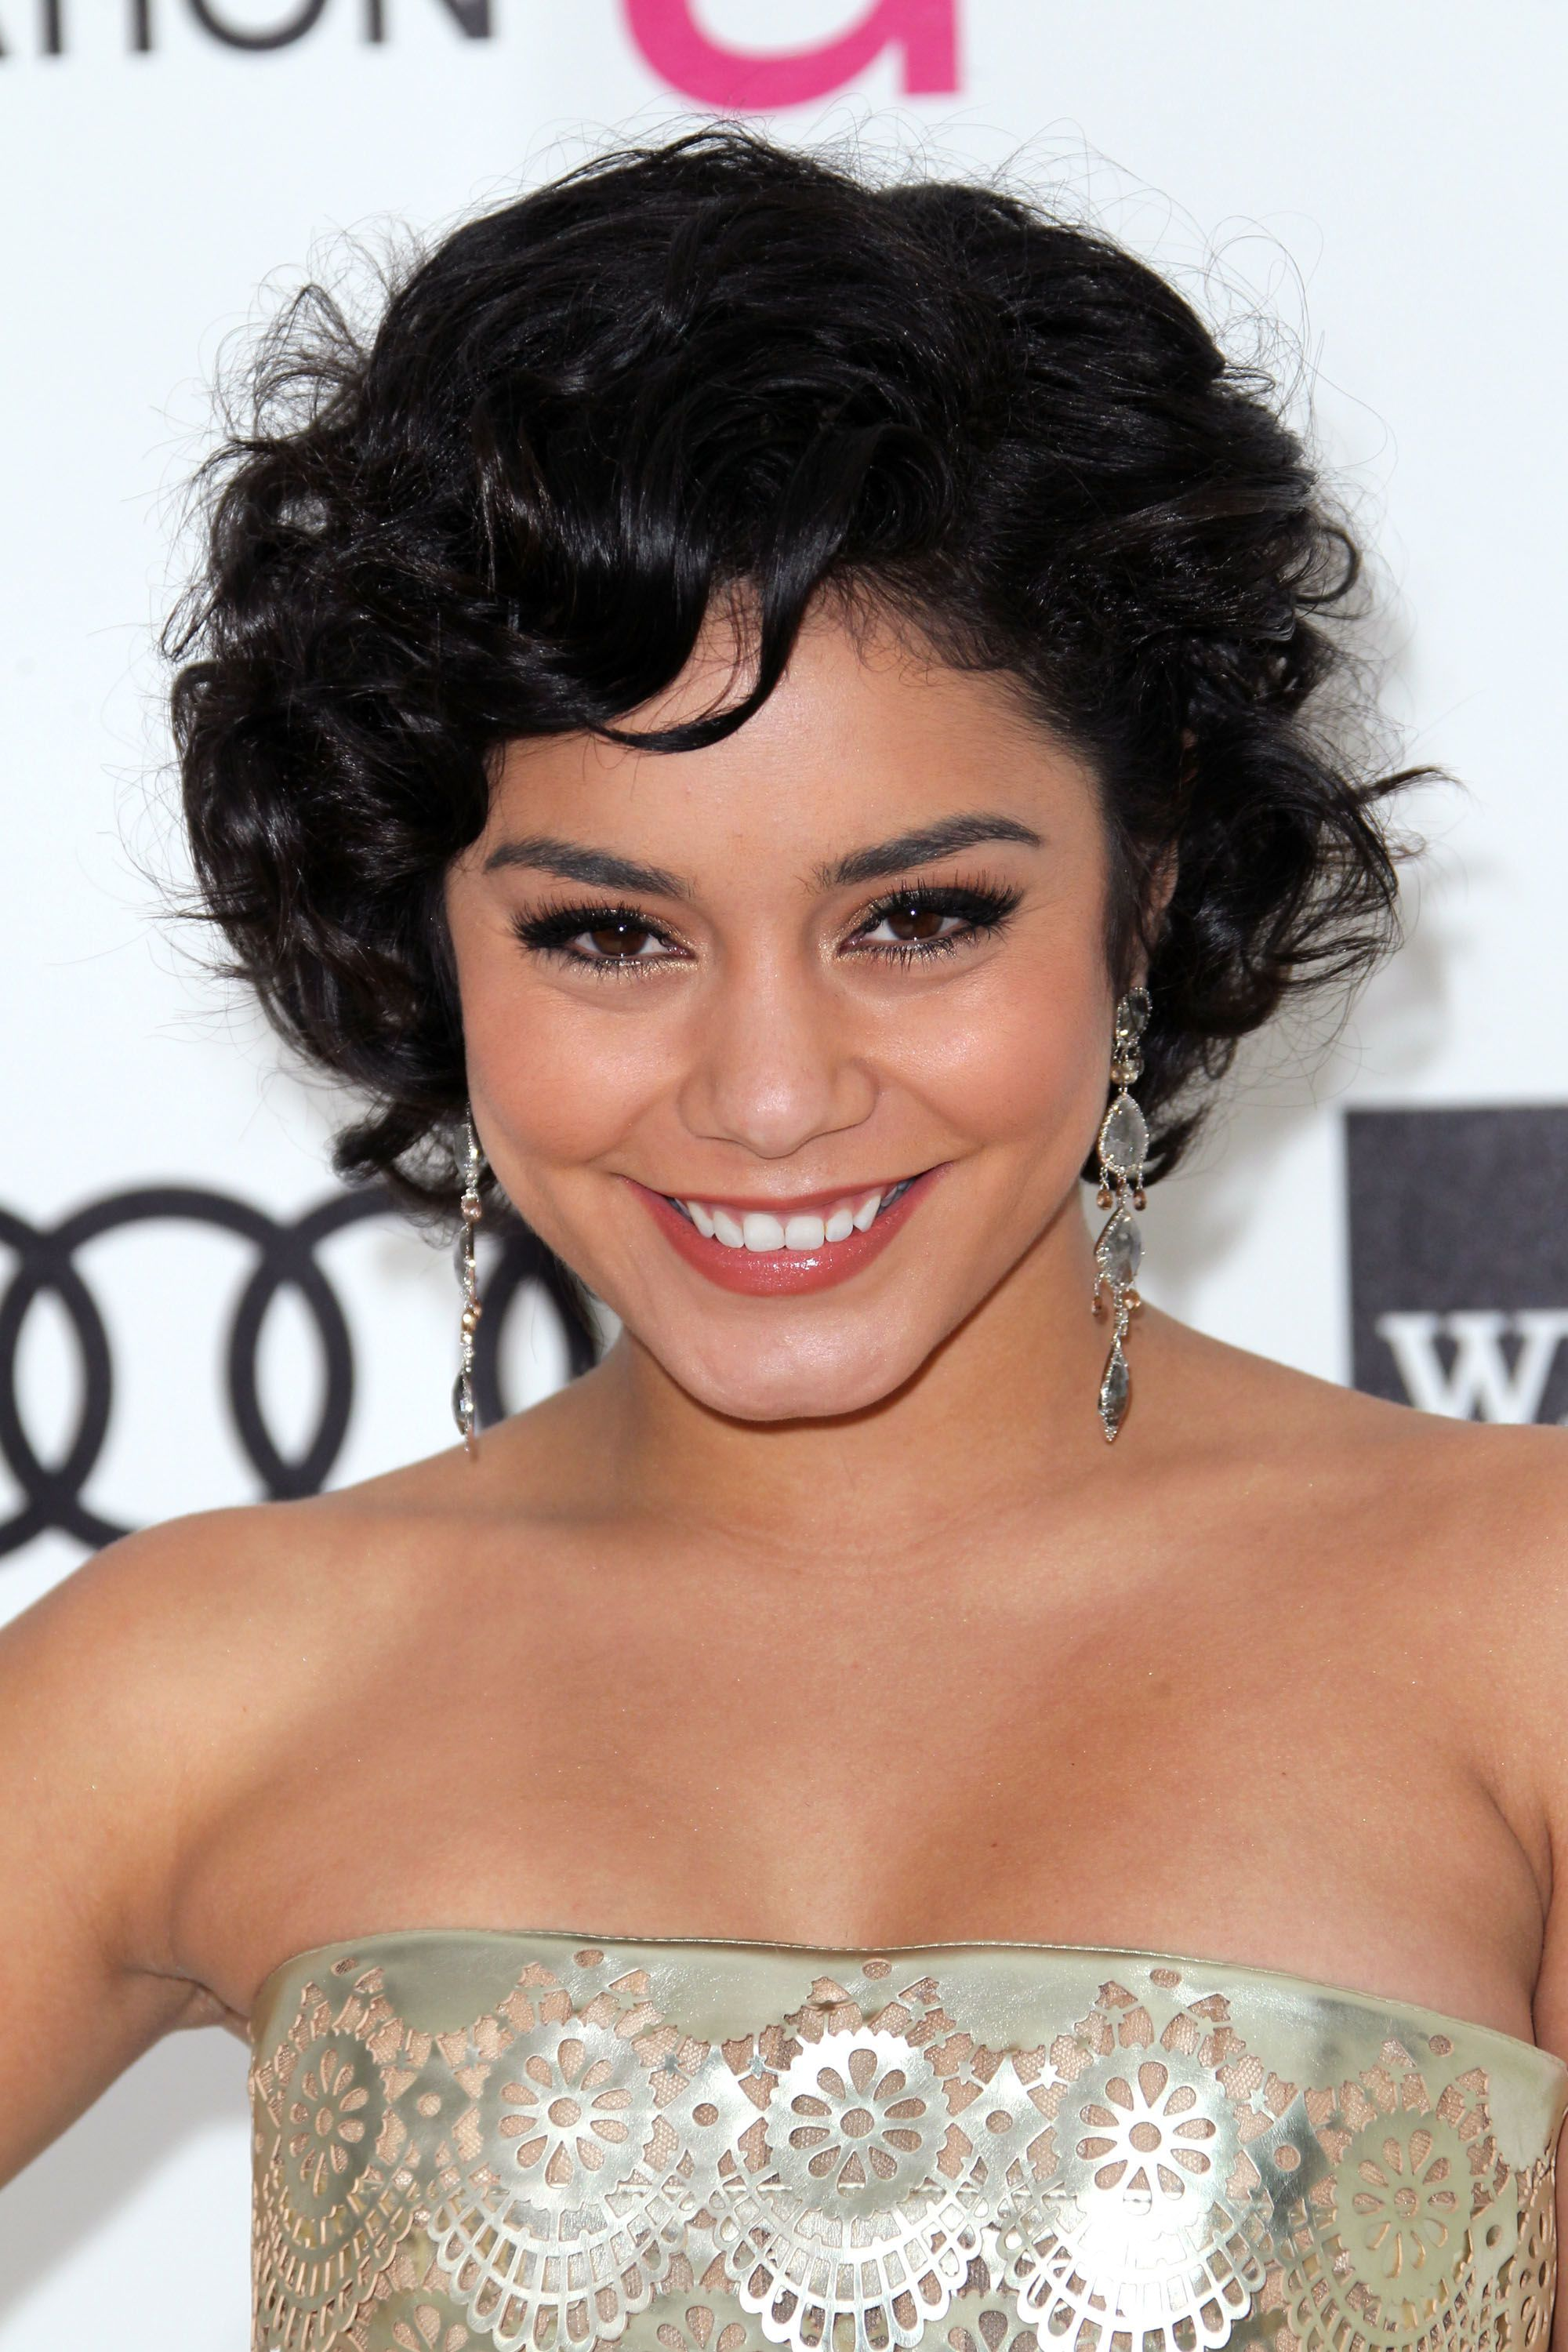 The best short cuts for thin curly hair thin curly hair long